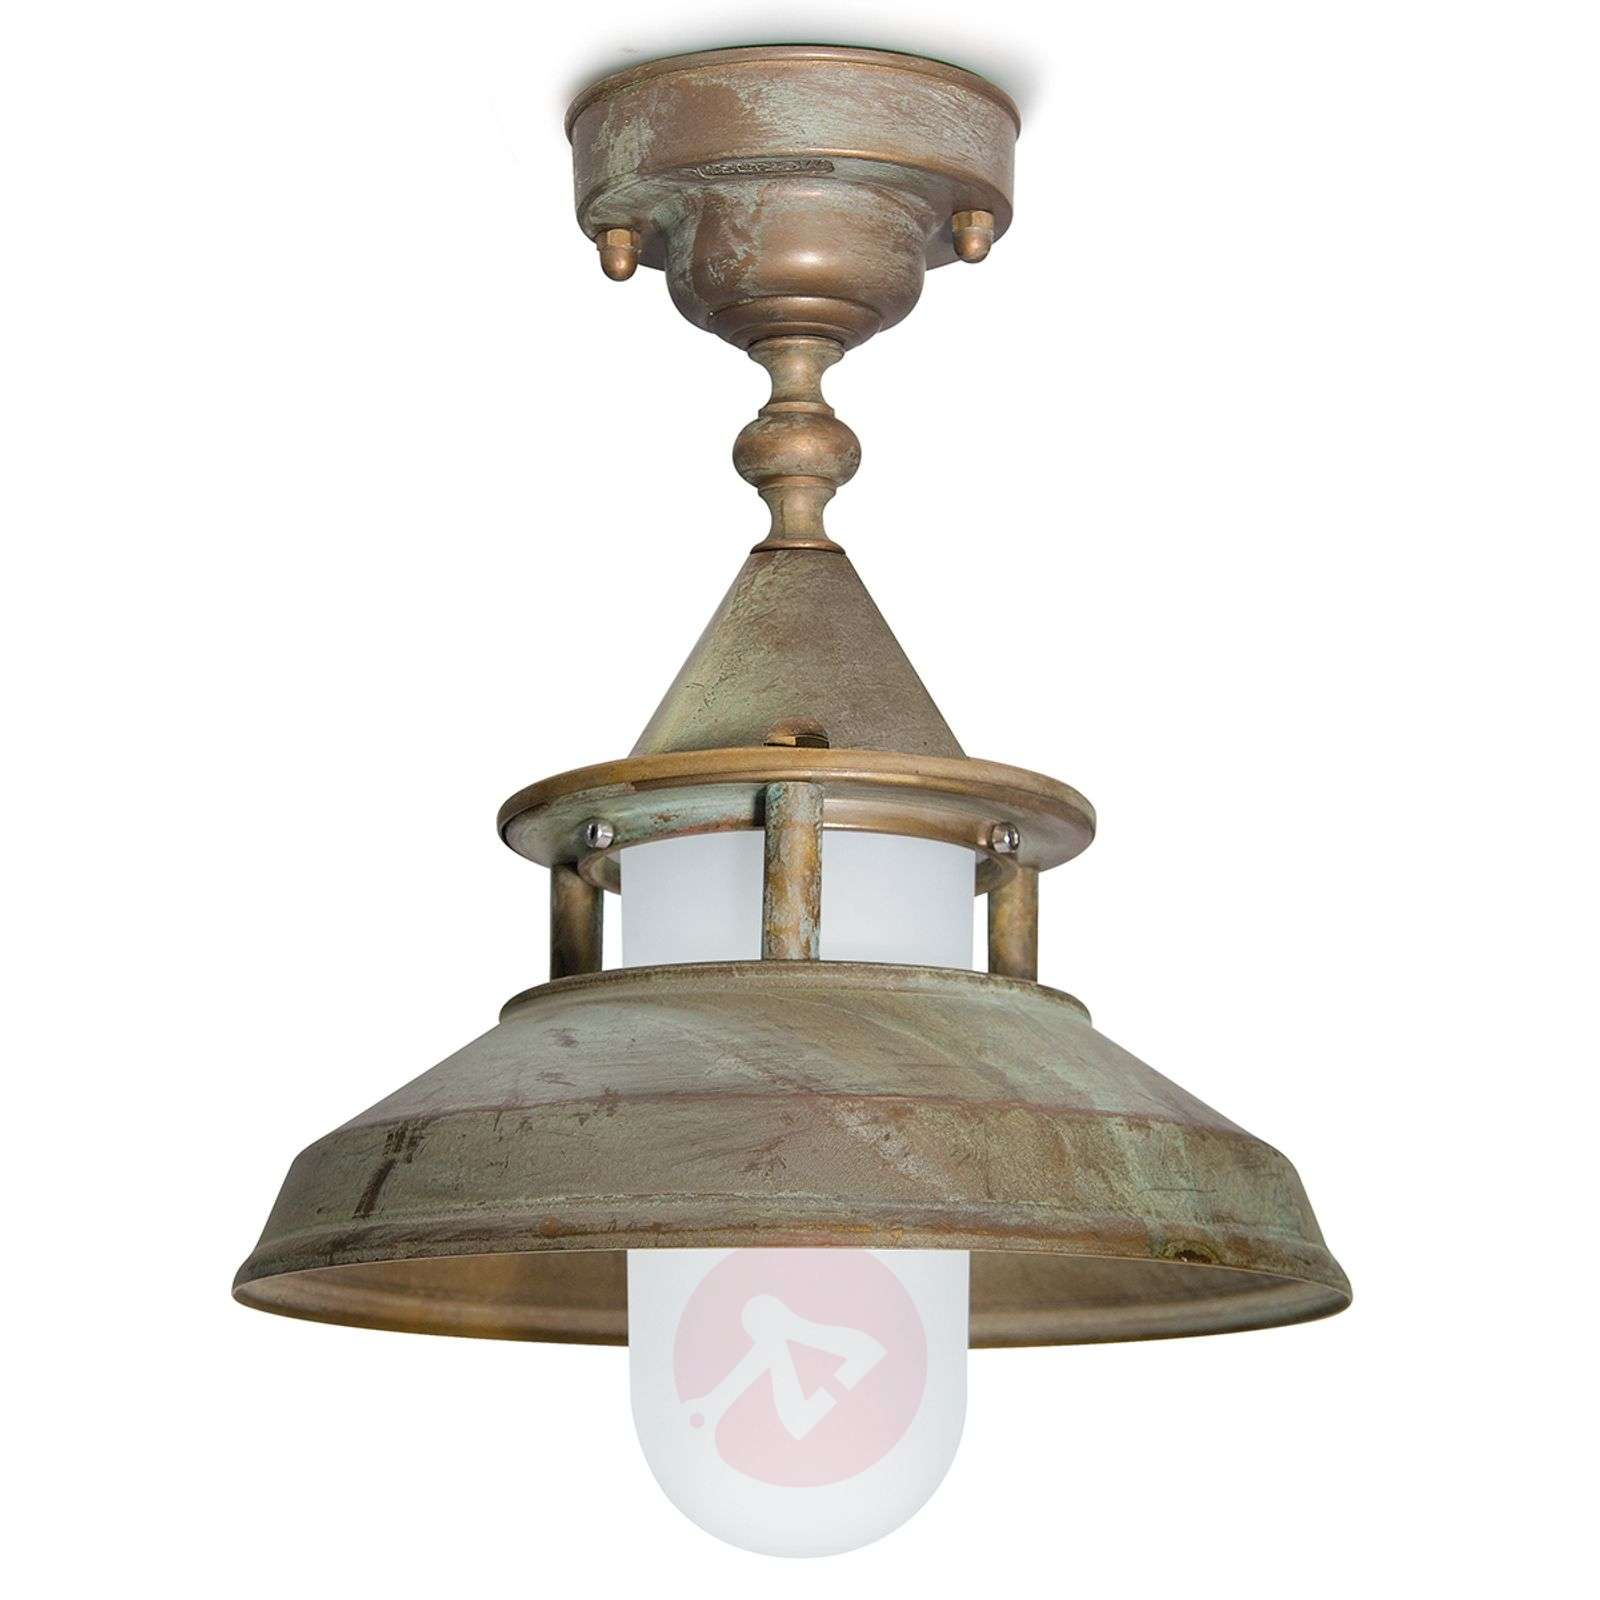 Seawater-resistant ceiling light Antique-6515369-01